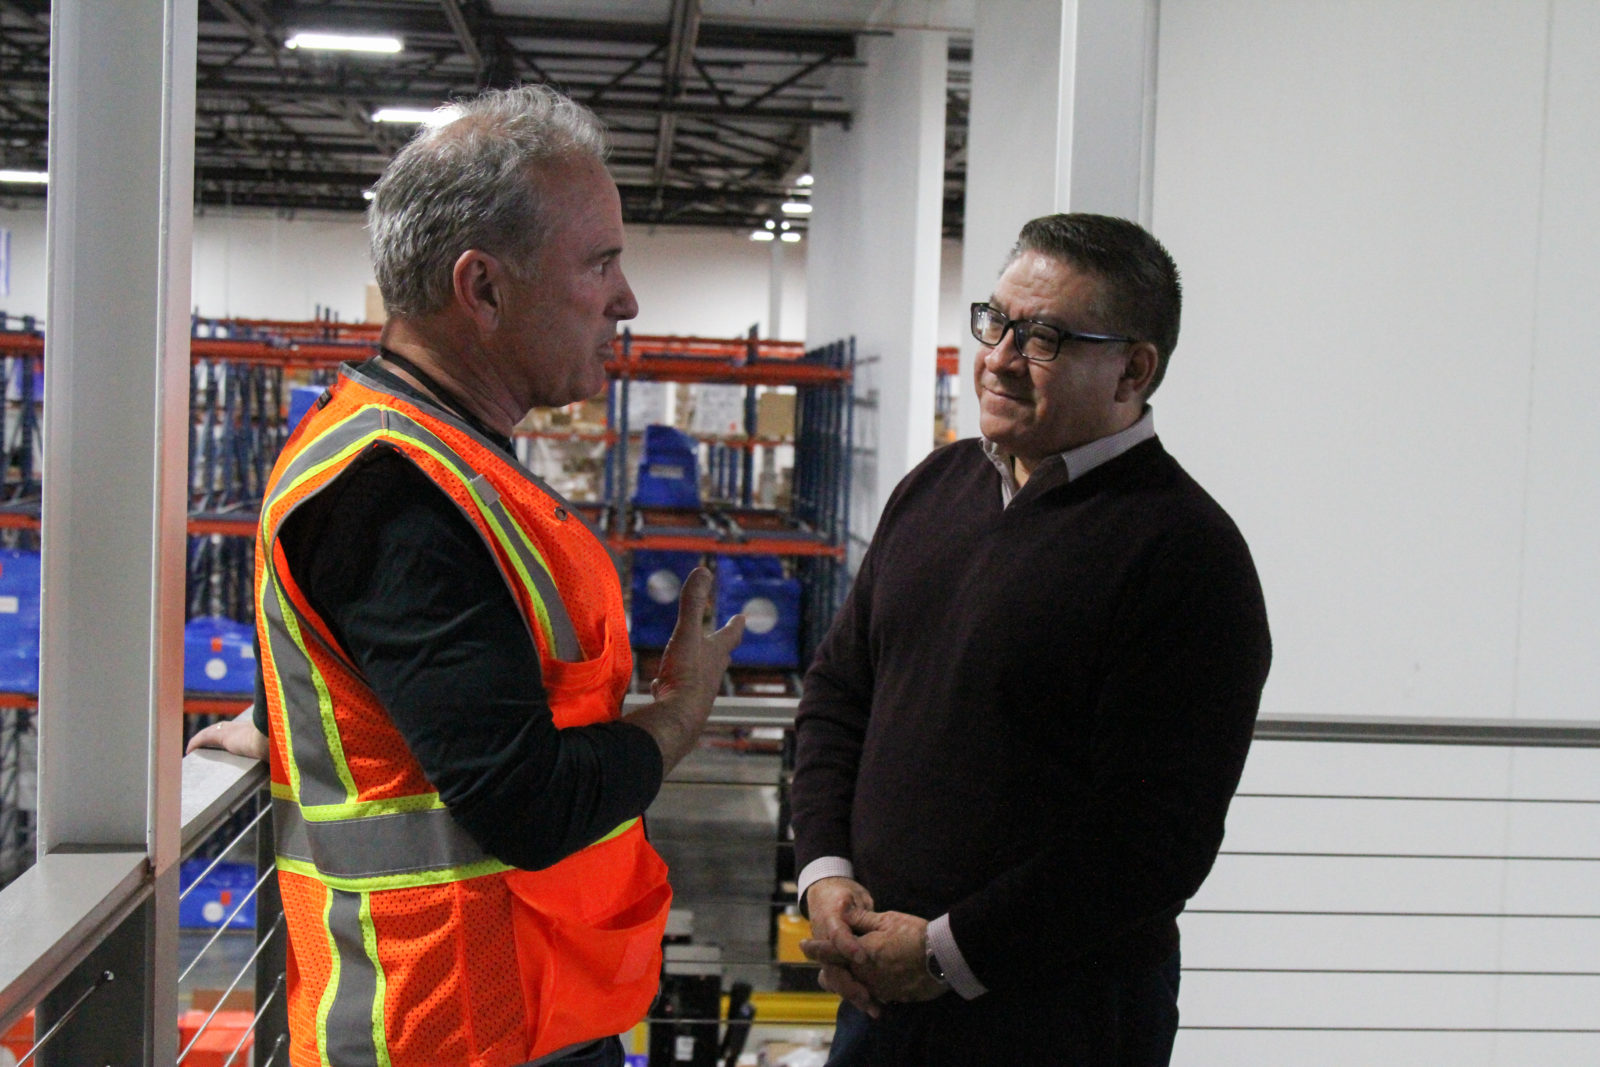 Rep. Salud Carbajal visits Direct Relief's headquarters in Santa Barbara on Feb. 19, 2019, where CEO Thomas Tighe briefed the Congressman on the organization's work. (Lara Cooper/Direct Relief)